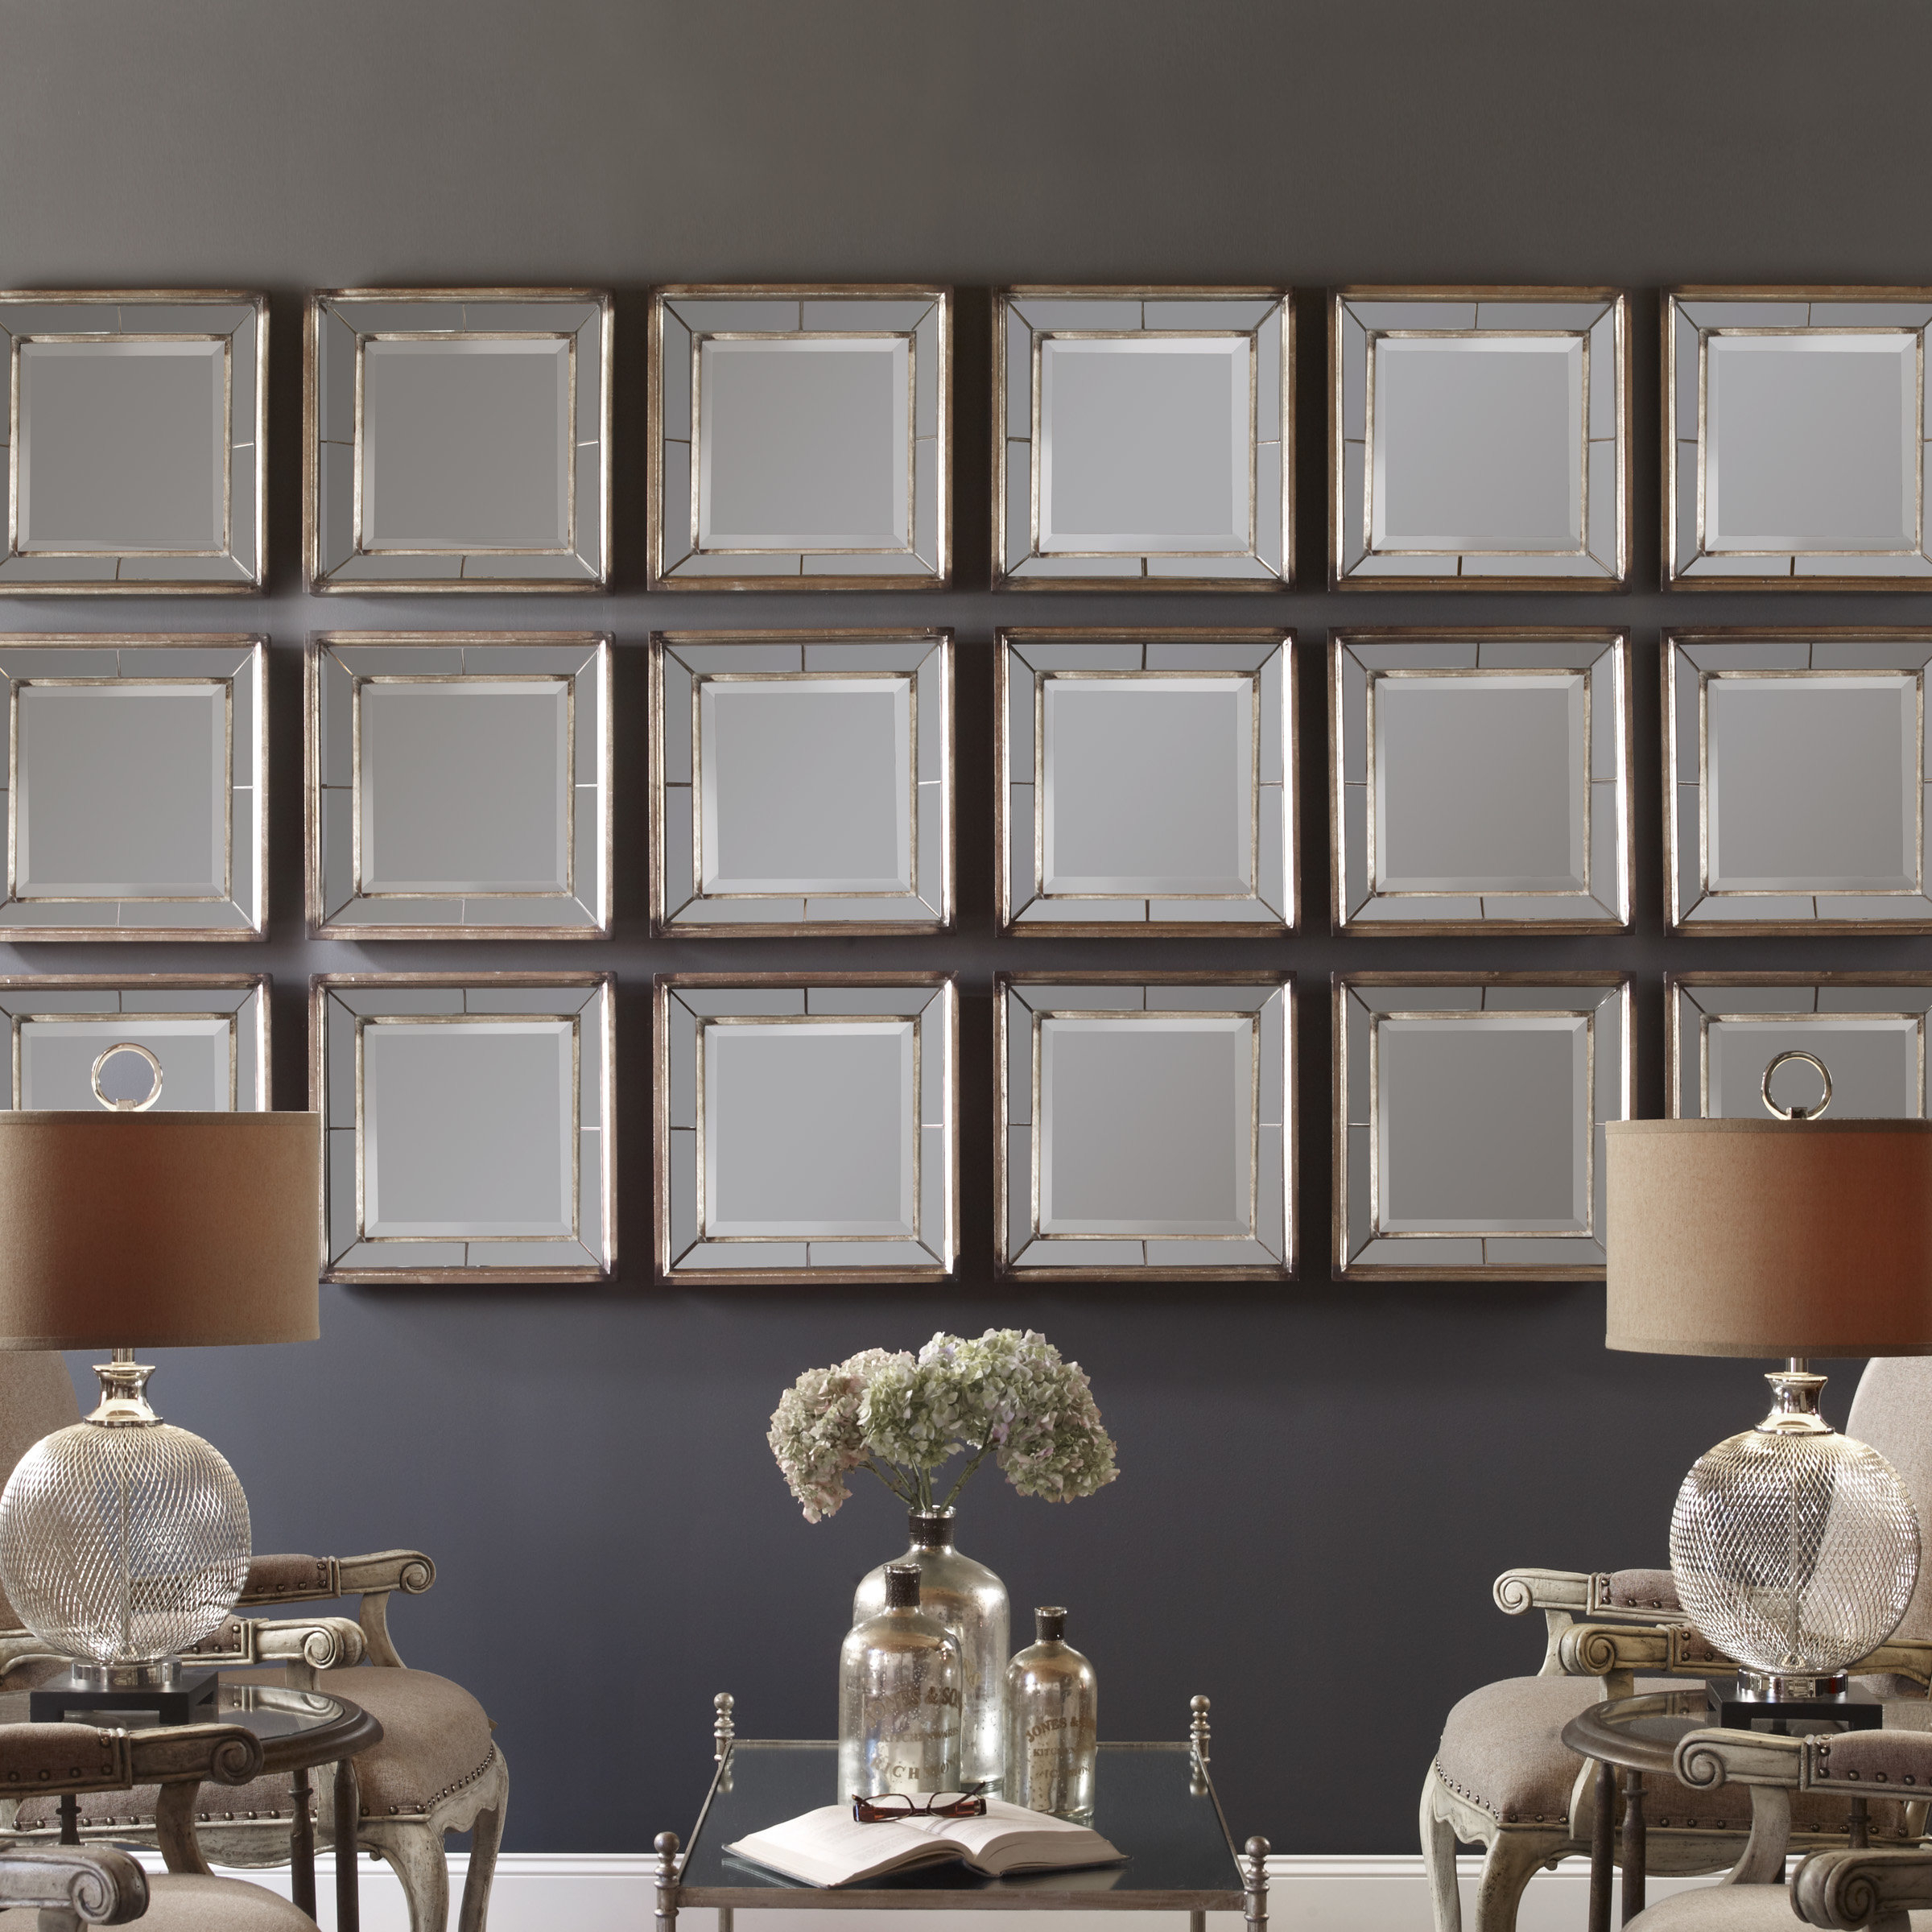 2 Piece Binion Traditional Mirror Set With Regard To 2 Piece Priscilla Square Traditional Beveled Distressed Accent Mirror Sets (View 5 of 20)